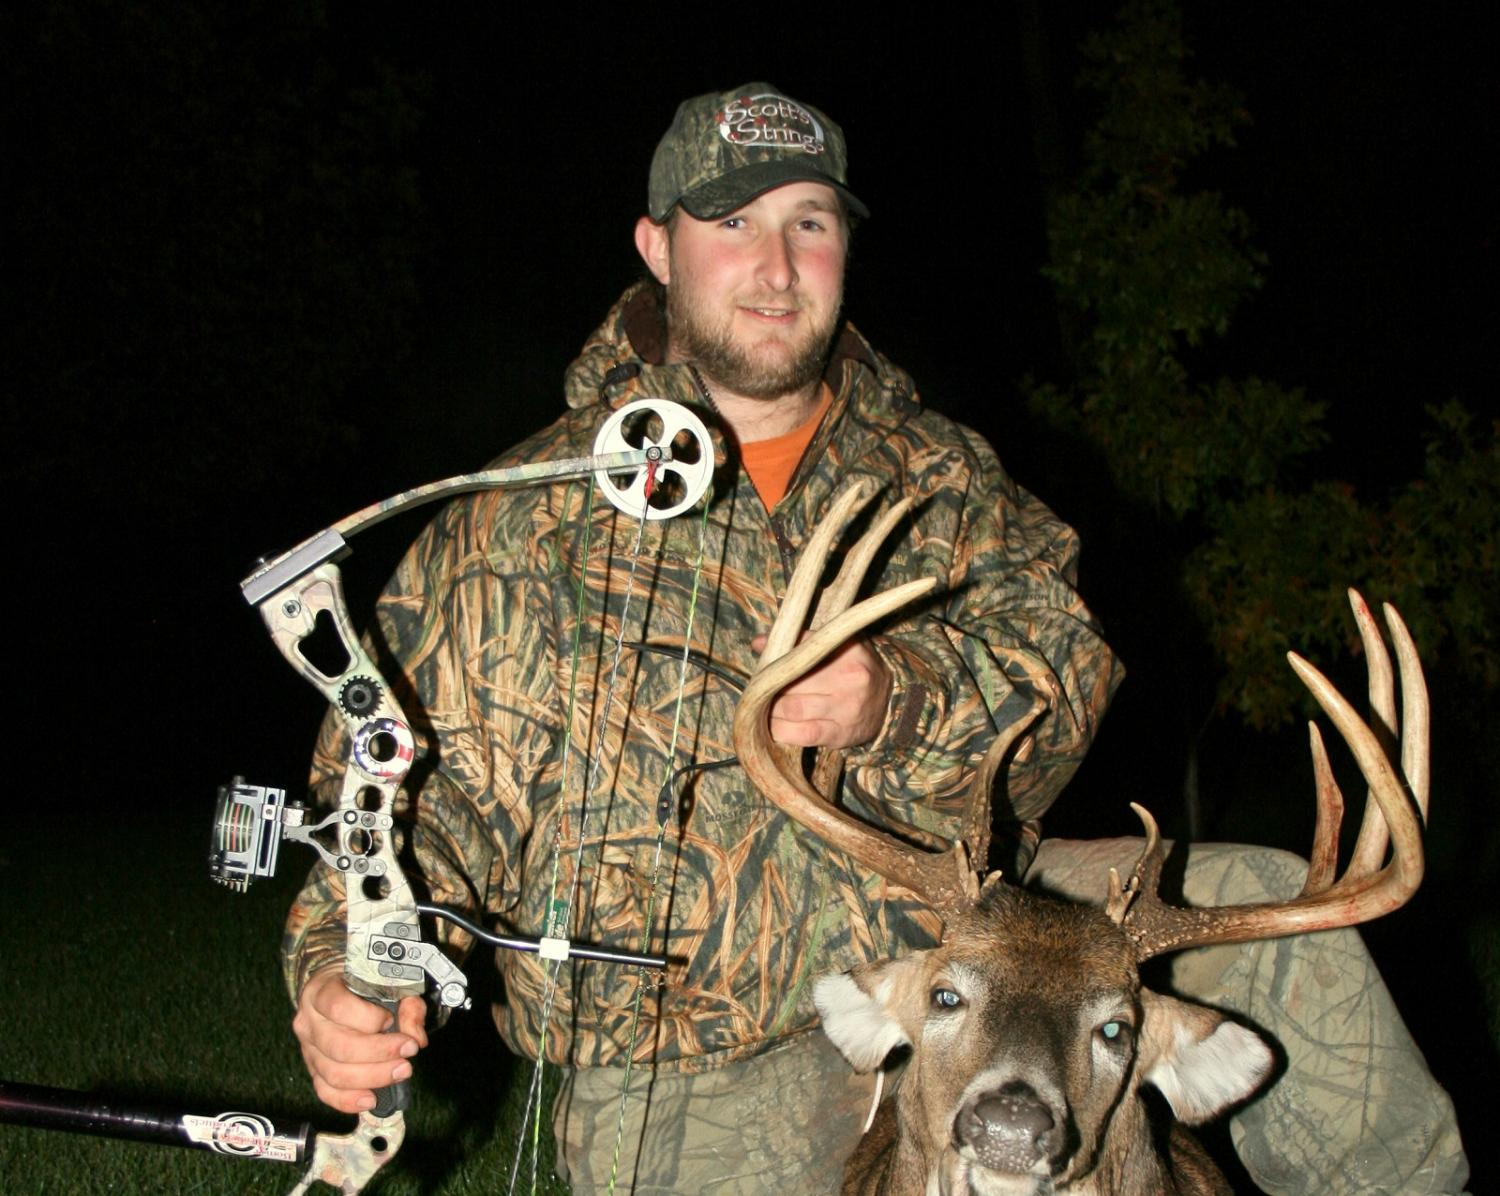 Scott Strings Hunting Staff Coordinator